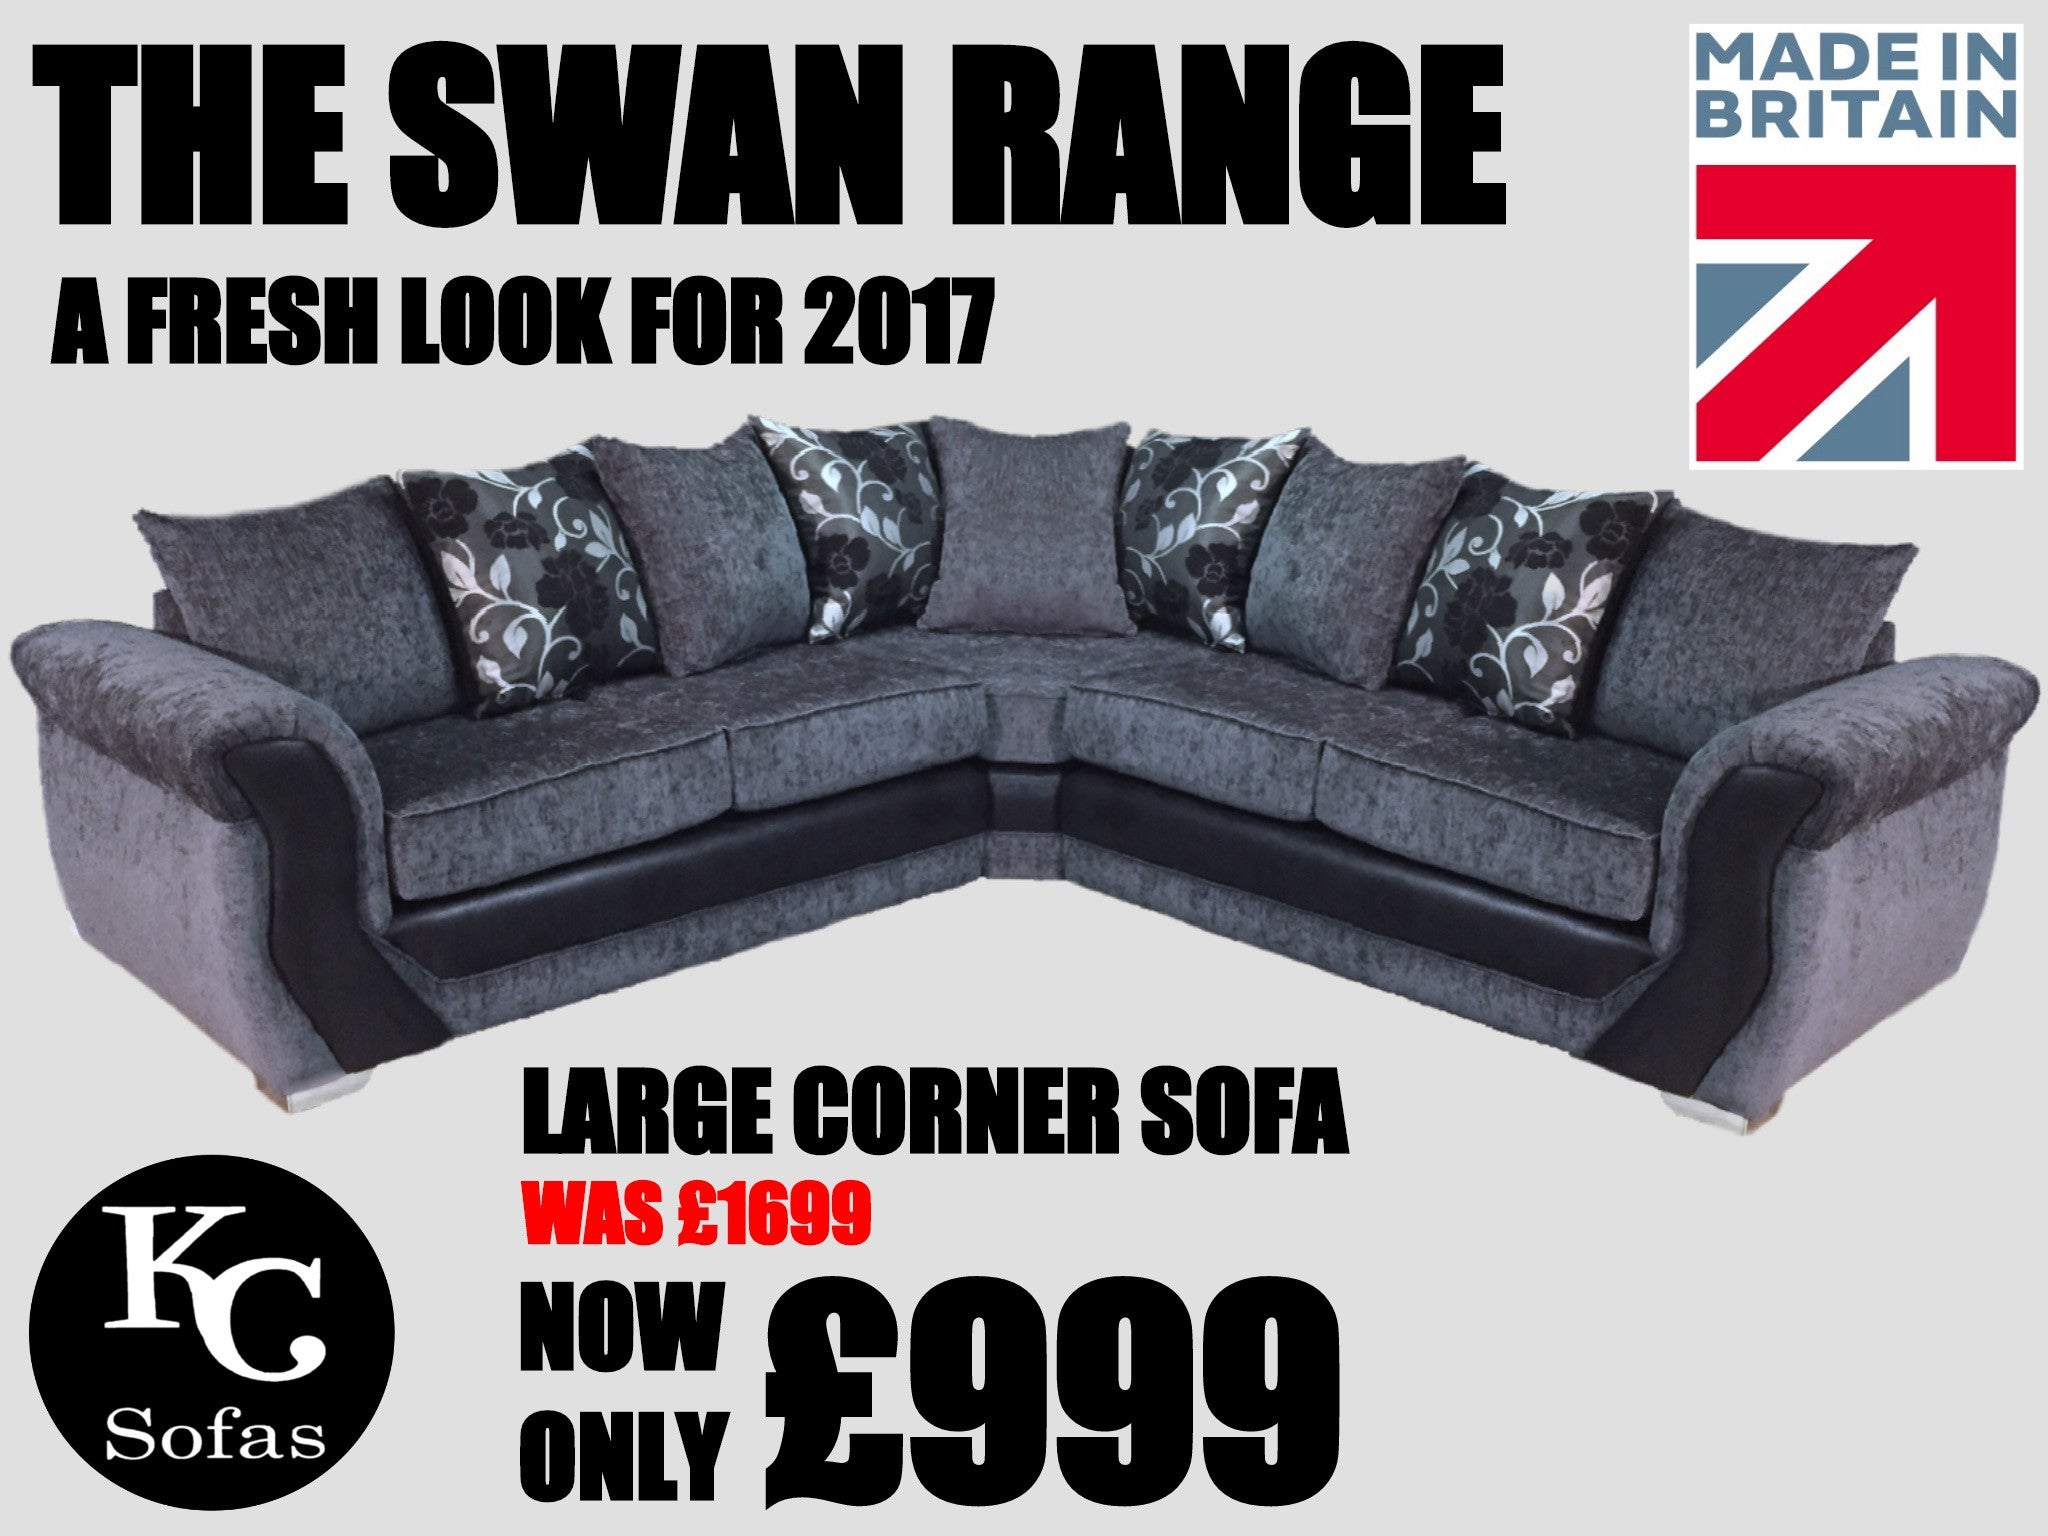 KC Sofas Discount Sofas in Skegness